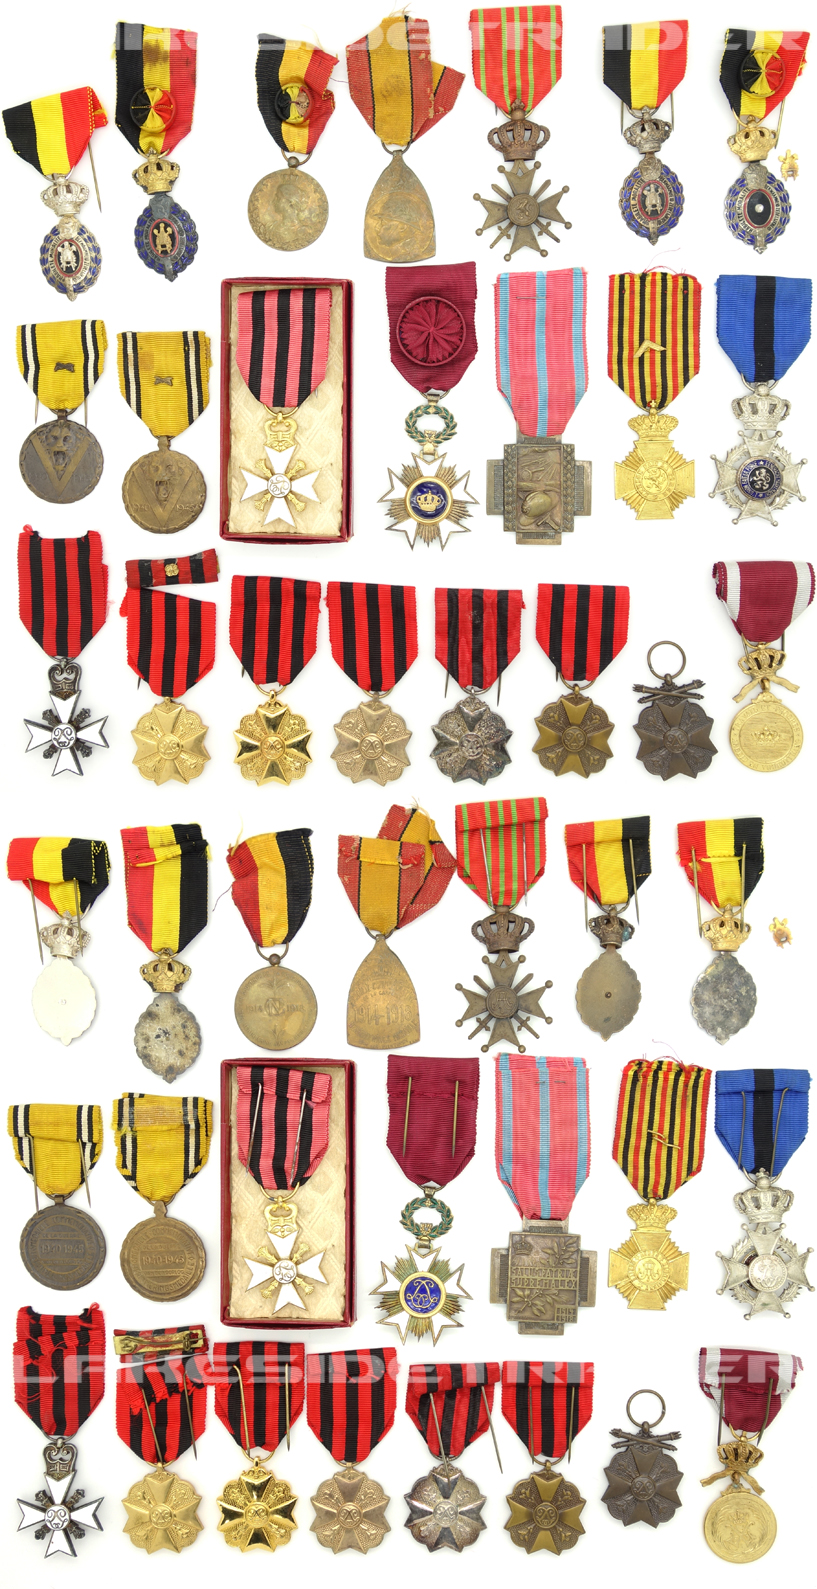 Belgian Medals, Decorations and Orders